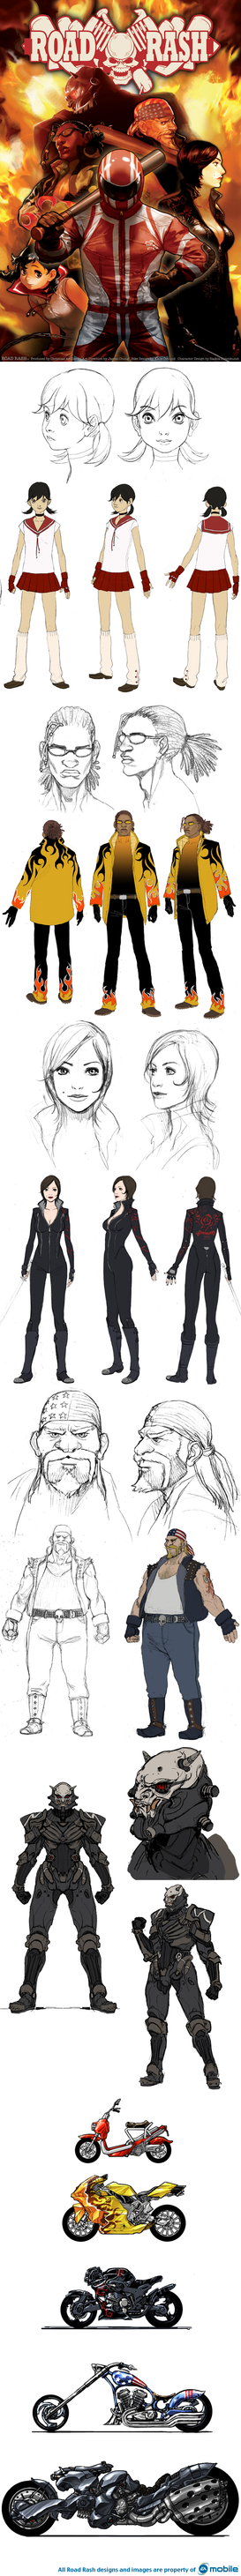 Road Rash Official Art 01 by torokun